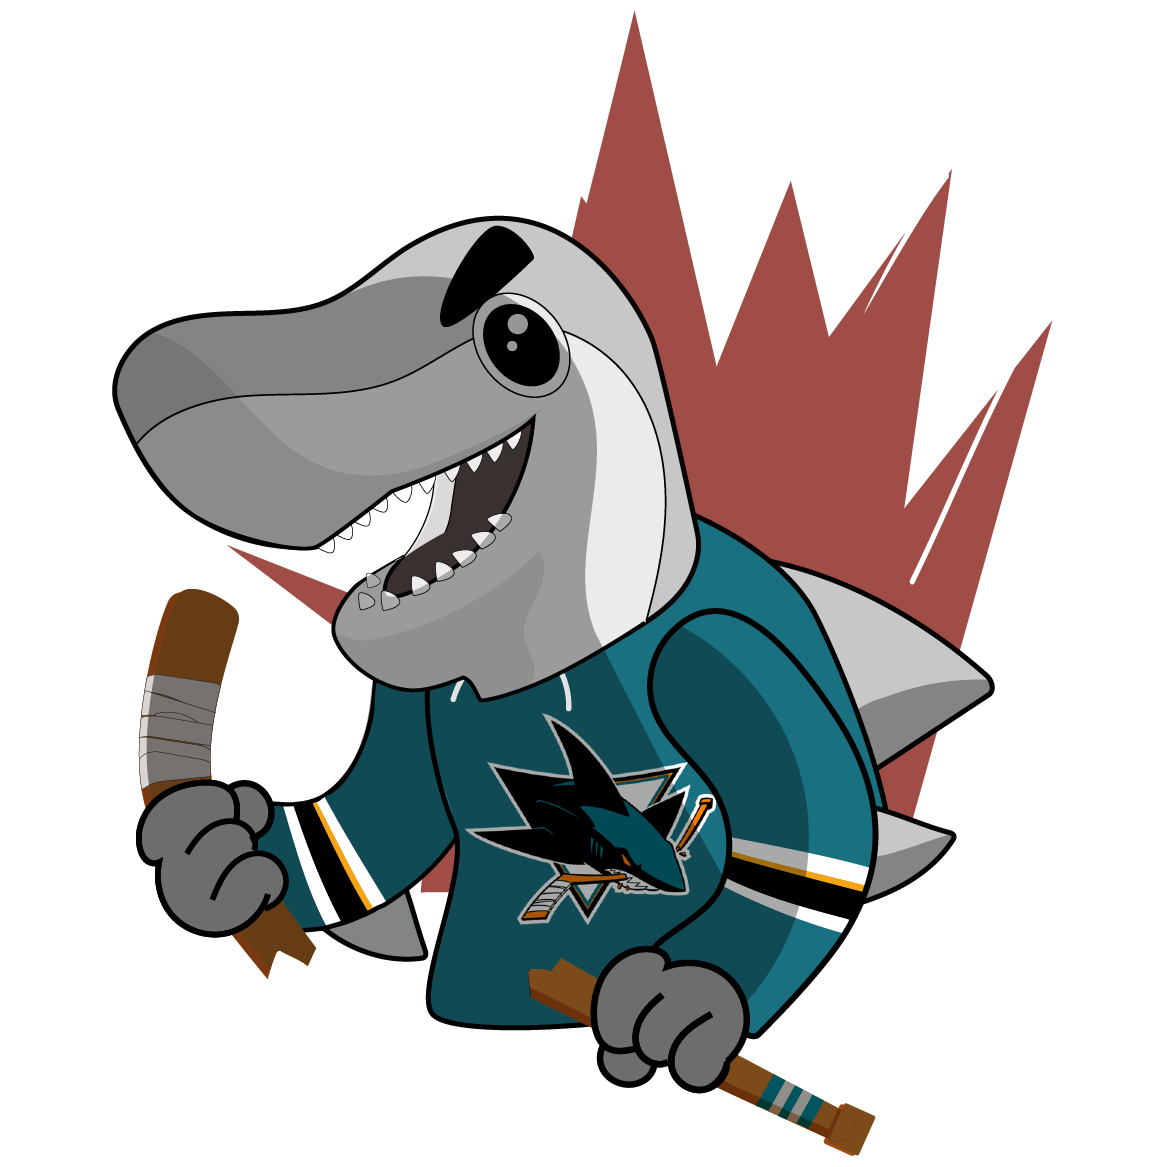 S.J. Sharkie Sticker Pack messages sticker-2